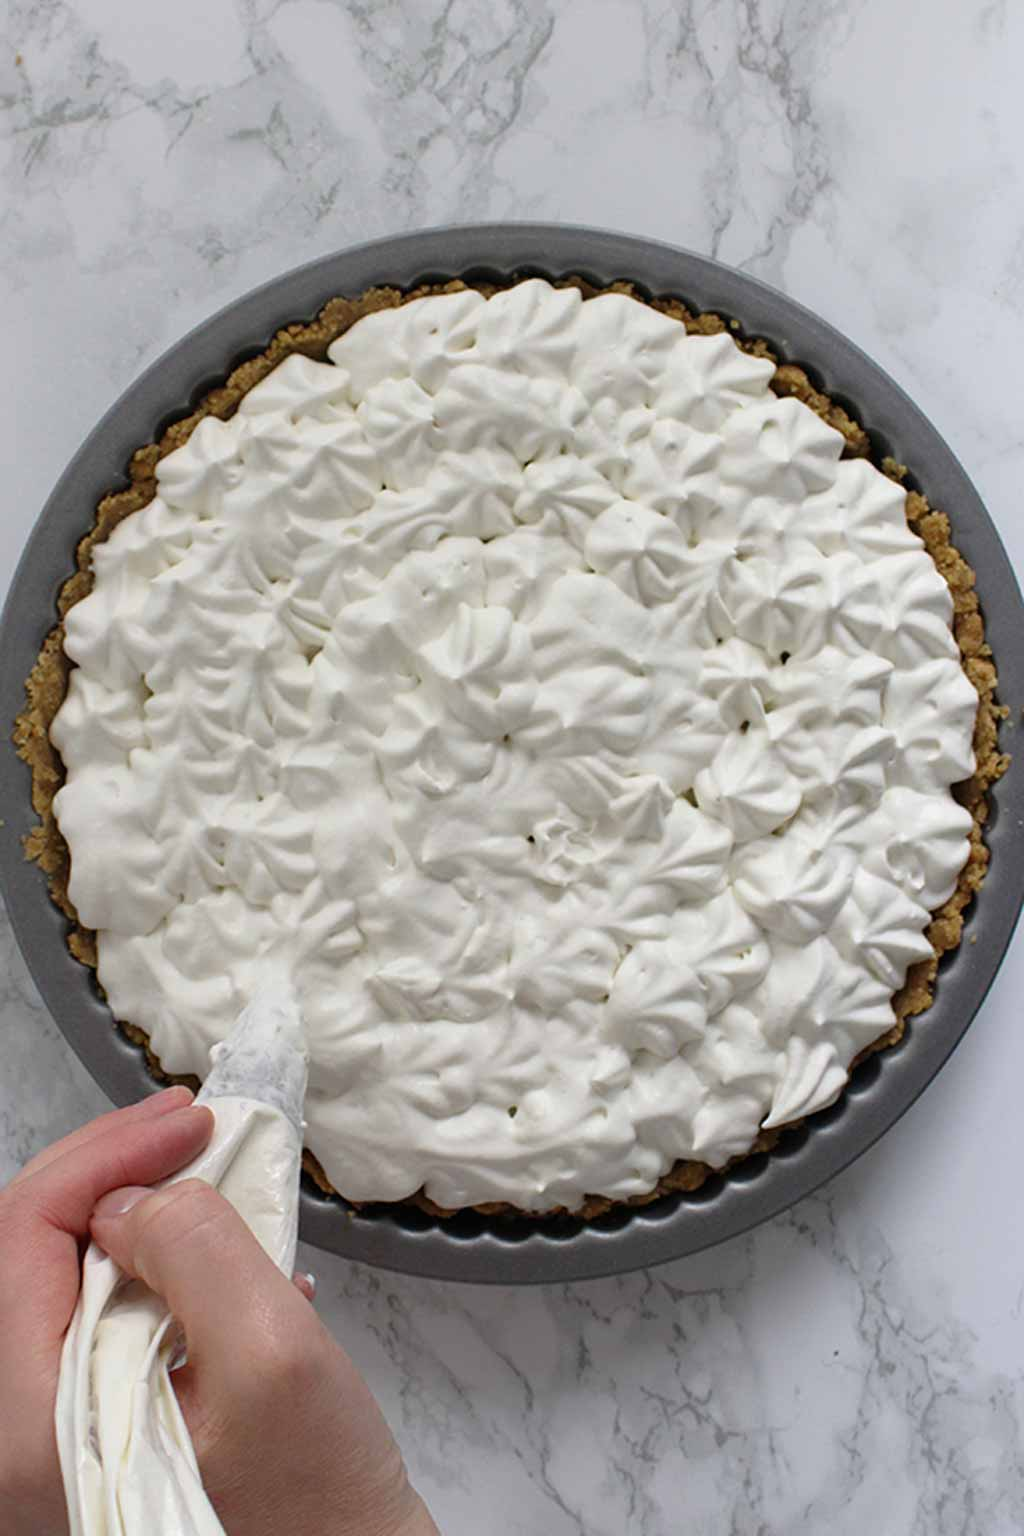 Piping Cream Onto The Pie